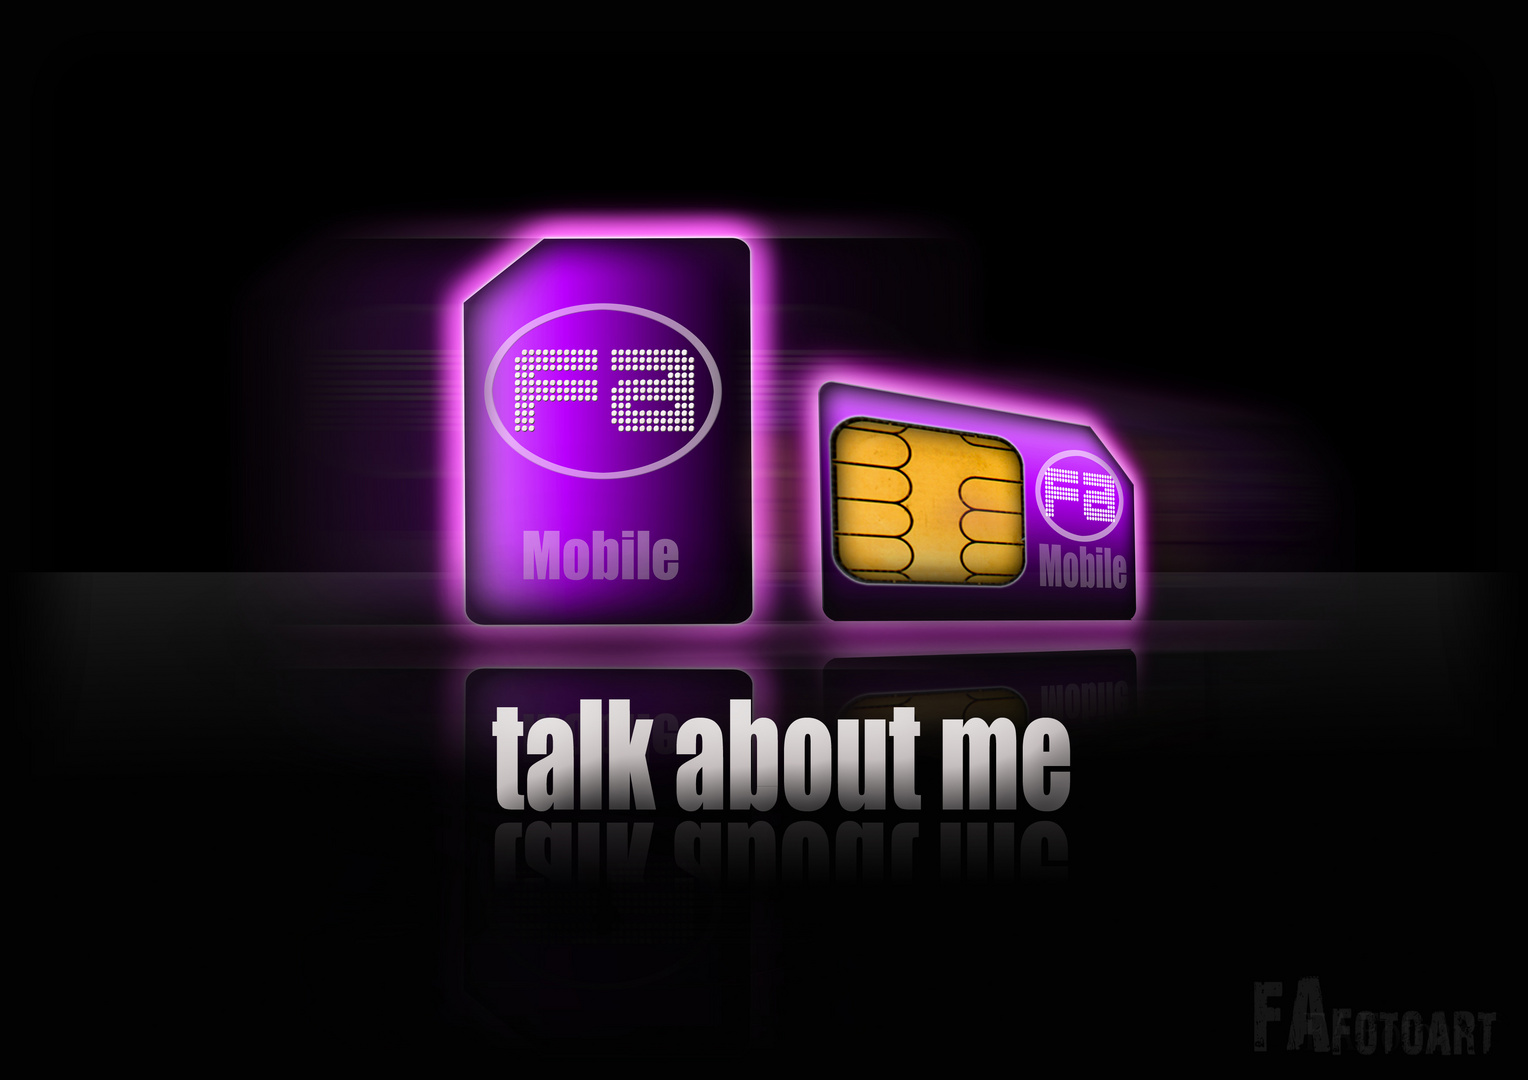 talk aboute me